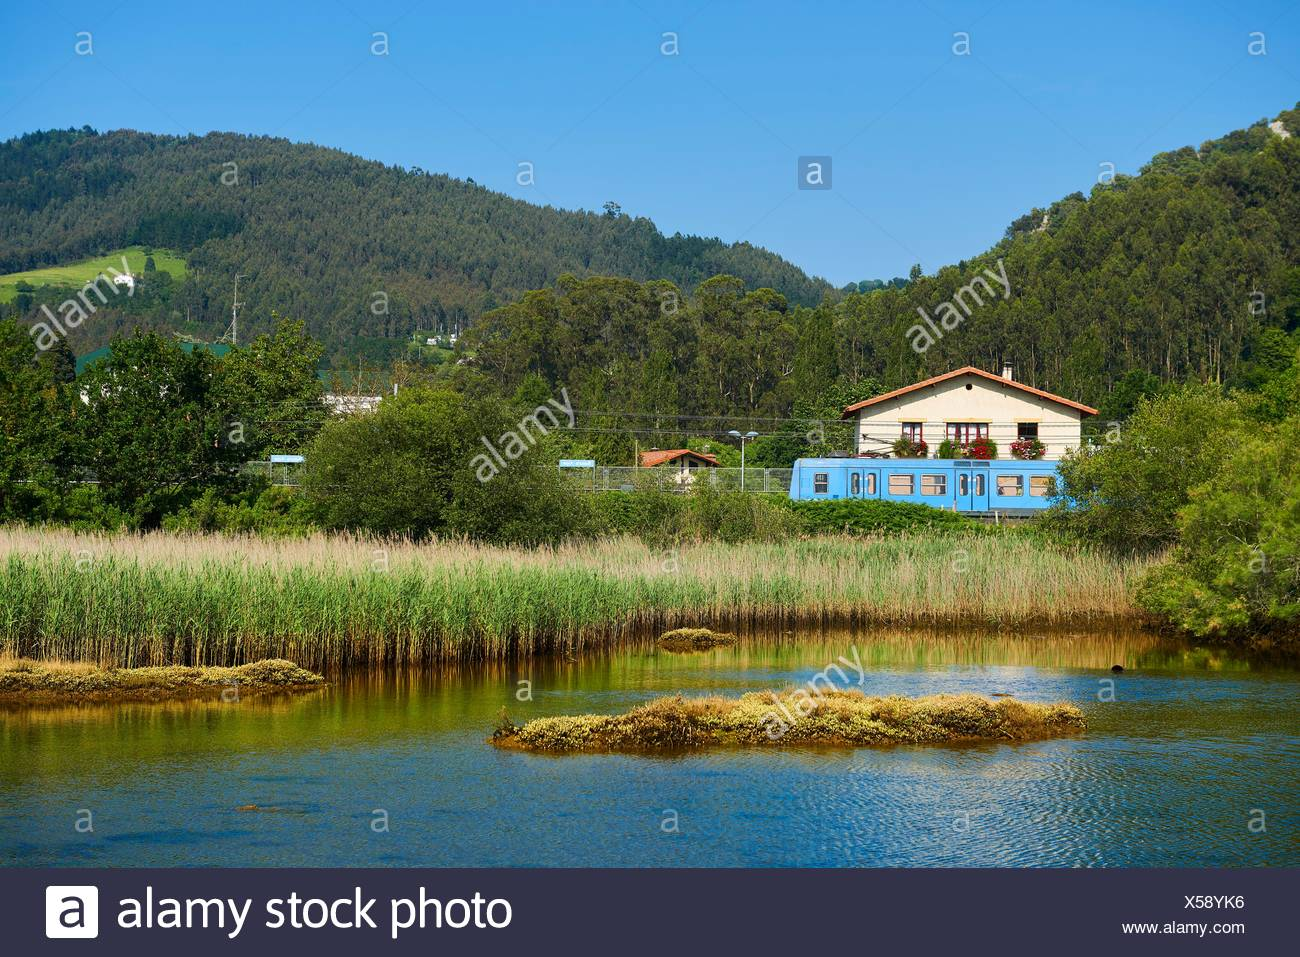 Axpe-Busturia, Biscay, Basque Country, Euskadi, Spain, Europe. - Stock Image